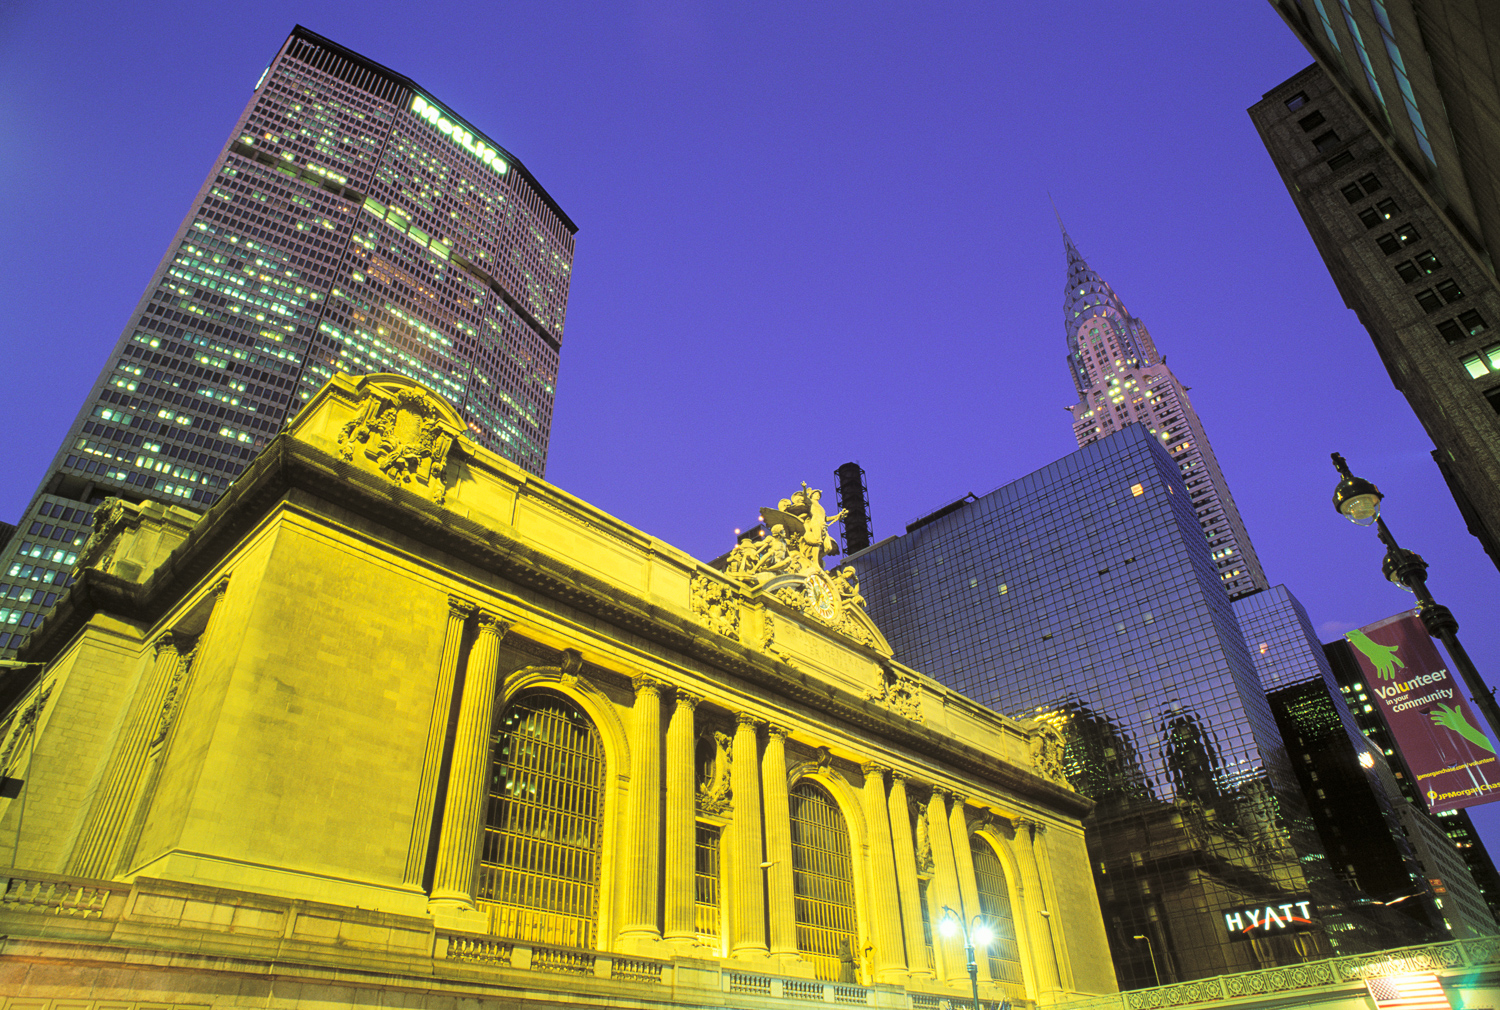 Grand Central Terminal, Chrysler Building & Metlife Building, Manhattan, New York